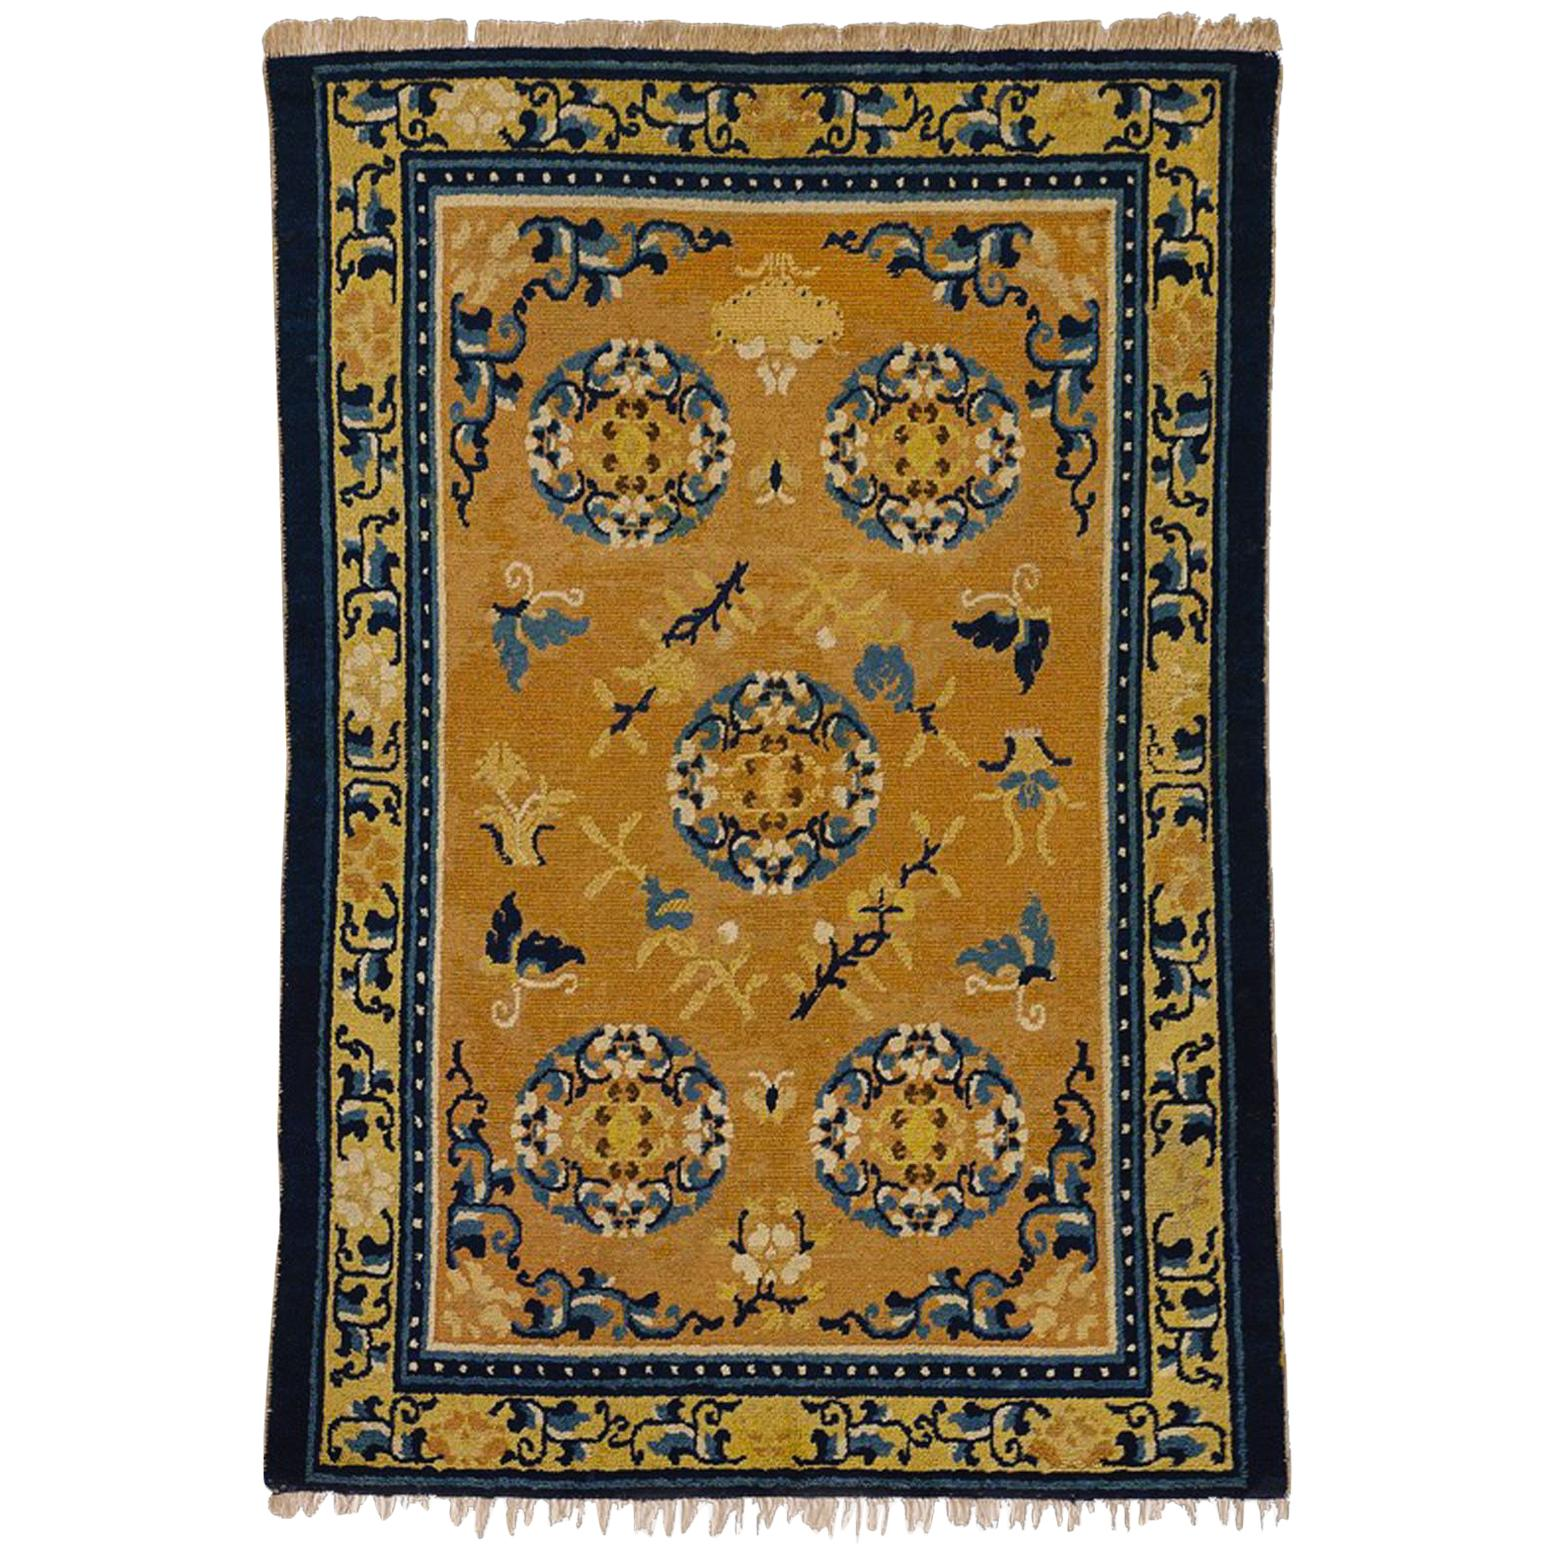 19th Century Chinese Ninxia Ocher Yellow Rug Fine Hand Knotted, Cotton and Wool